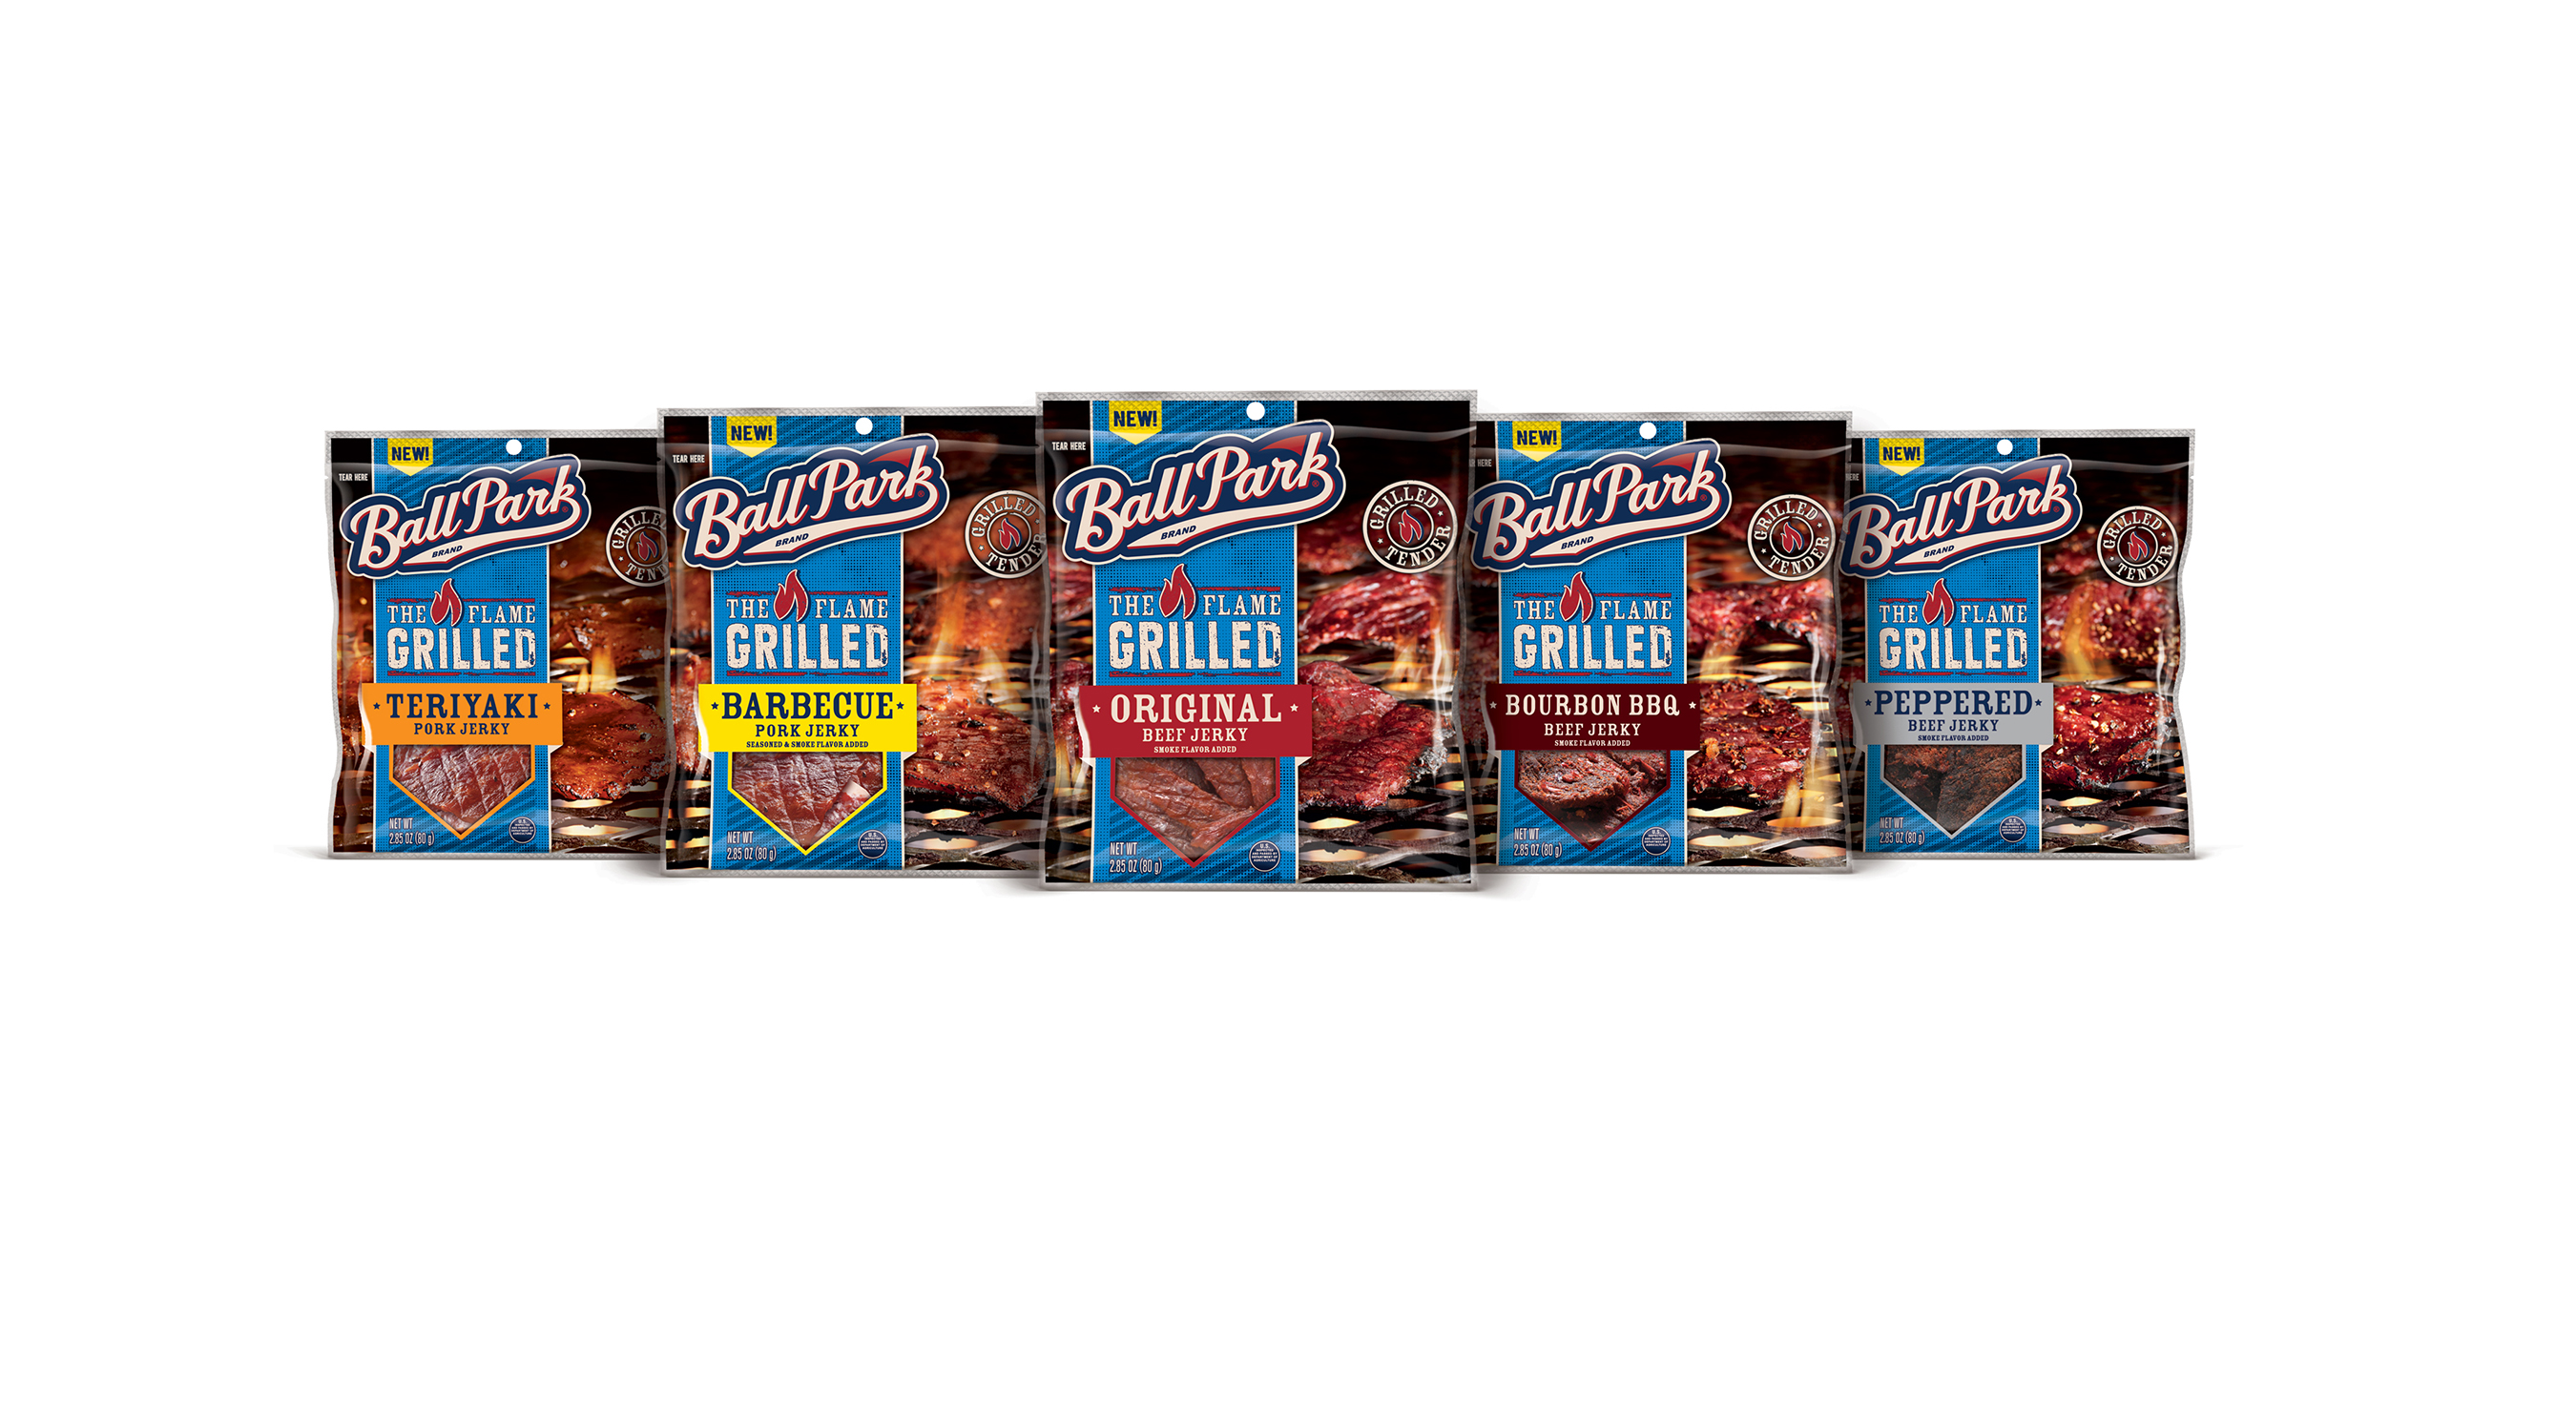 Ball Park Flame Grilled Jerky is available in five delicious flavors including Original Beef, Bourbon BBQ Beef, Peppered Beef, Barbecue Pork, and Teriyaki Pork